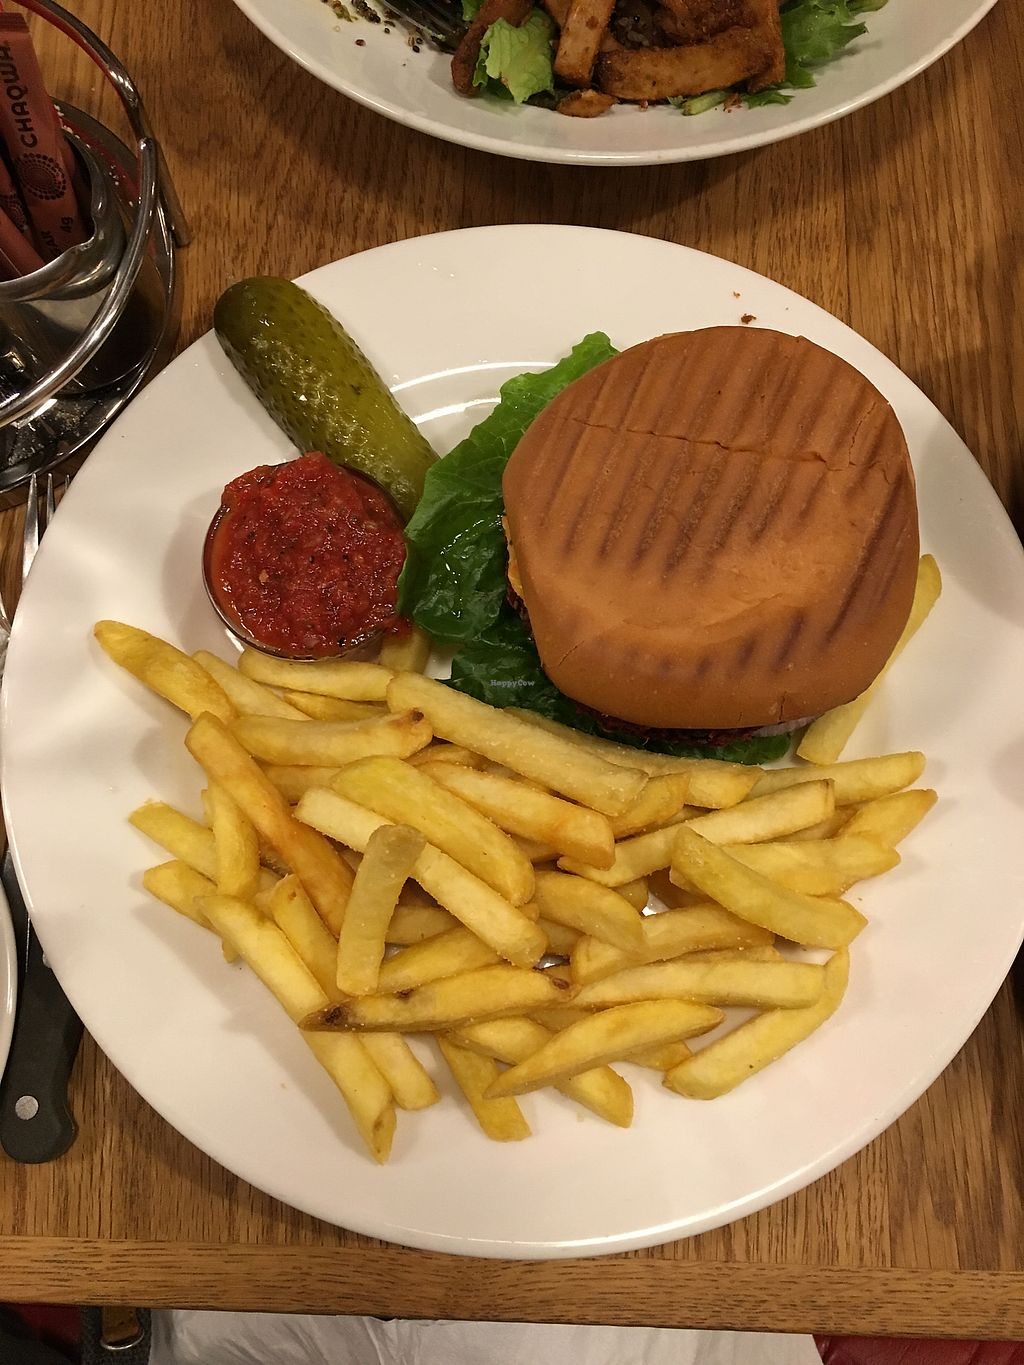 """Photo of The Laundromat Cafe  by <a href=""""/members/profile/MelG"""">MelG</a> <br/>Veggie Burger- veganized! They replace the mayo with hummus and swap out the brioche. Still very tasty! <br/> October 25, 2017  - <a href='/contact/abuse/image/31992/318750'>Report</a>"""